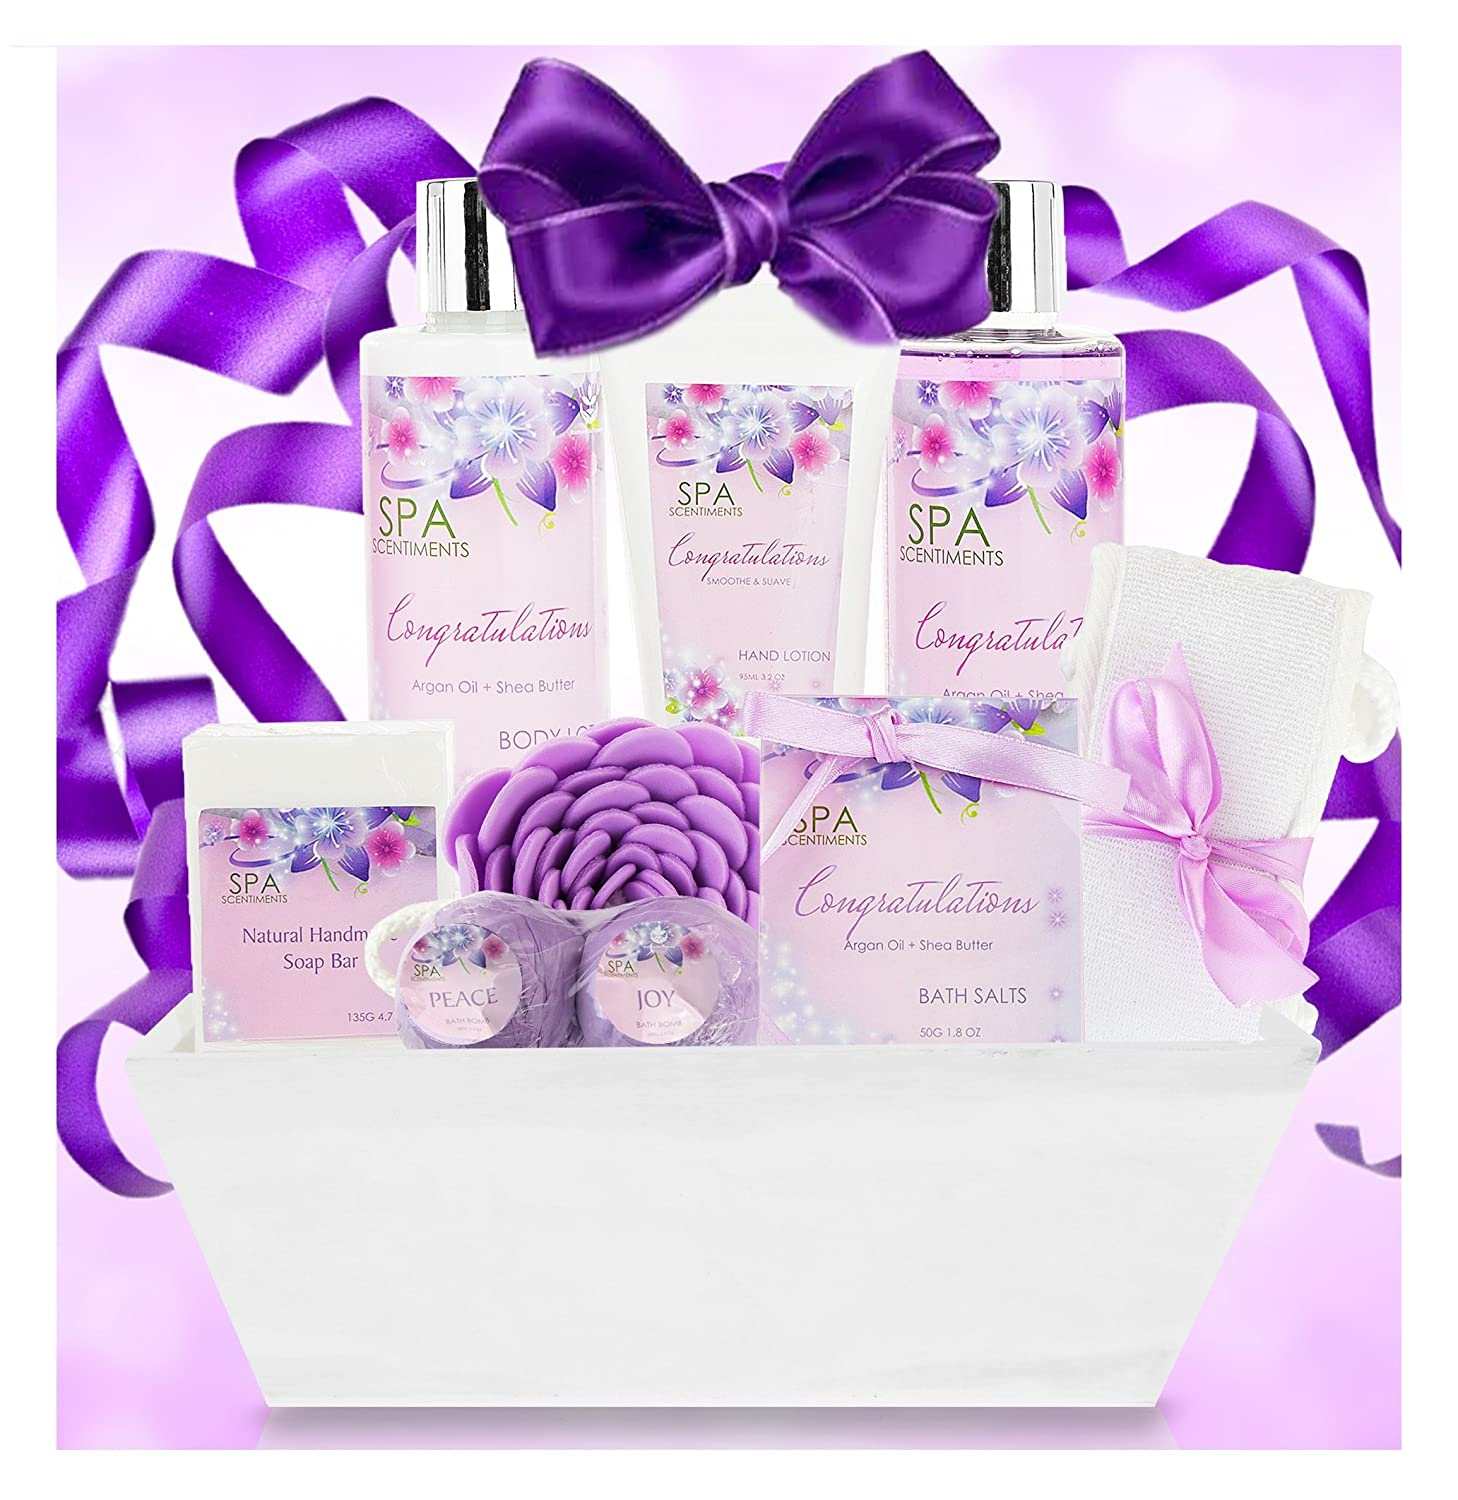 Nurture Me Organics Congratulations Gifts for Women Gift Spa Gift Basket - Gifts for Graduation, Baby Shower, New Home, New Job. Celebrate Every Milestone with Congratulations Gift Baskets for Women!